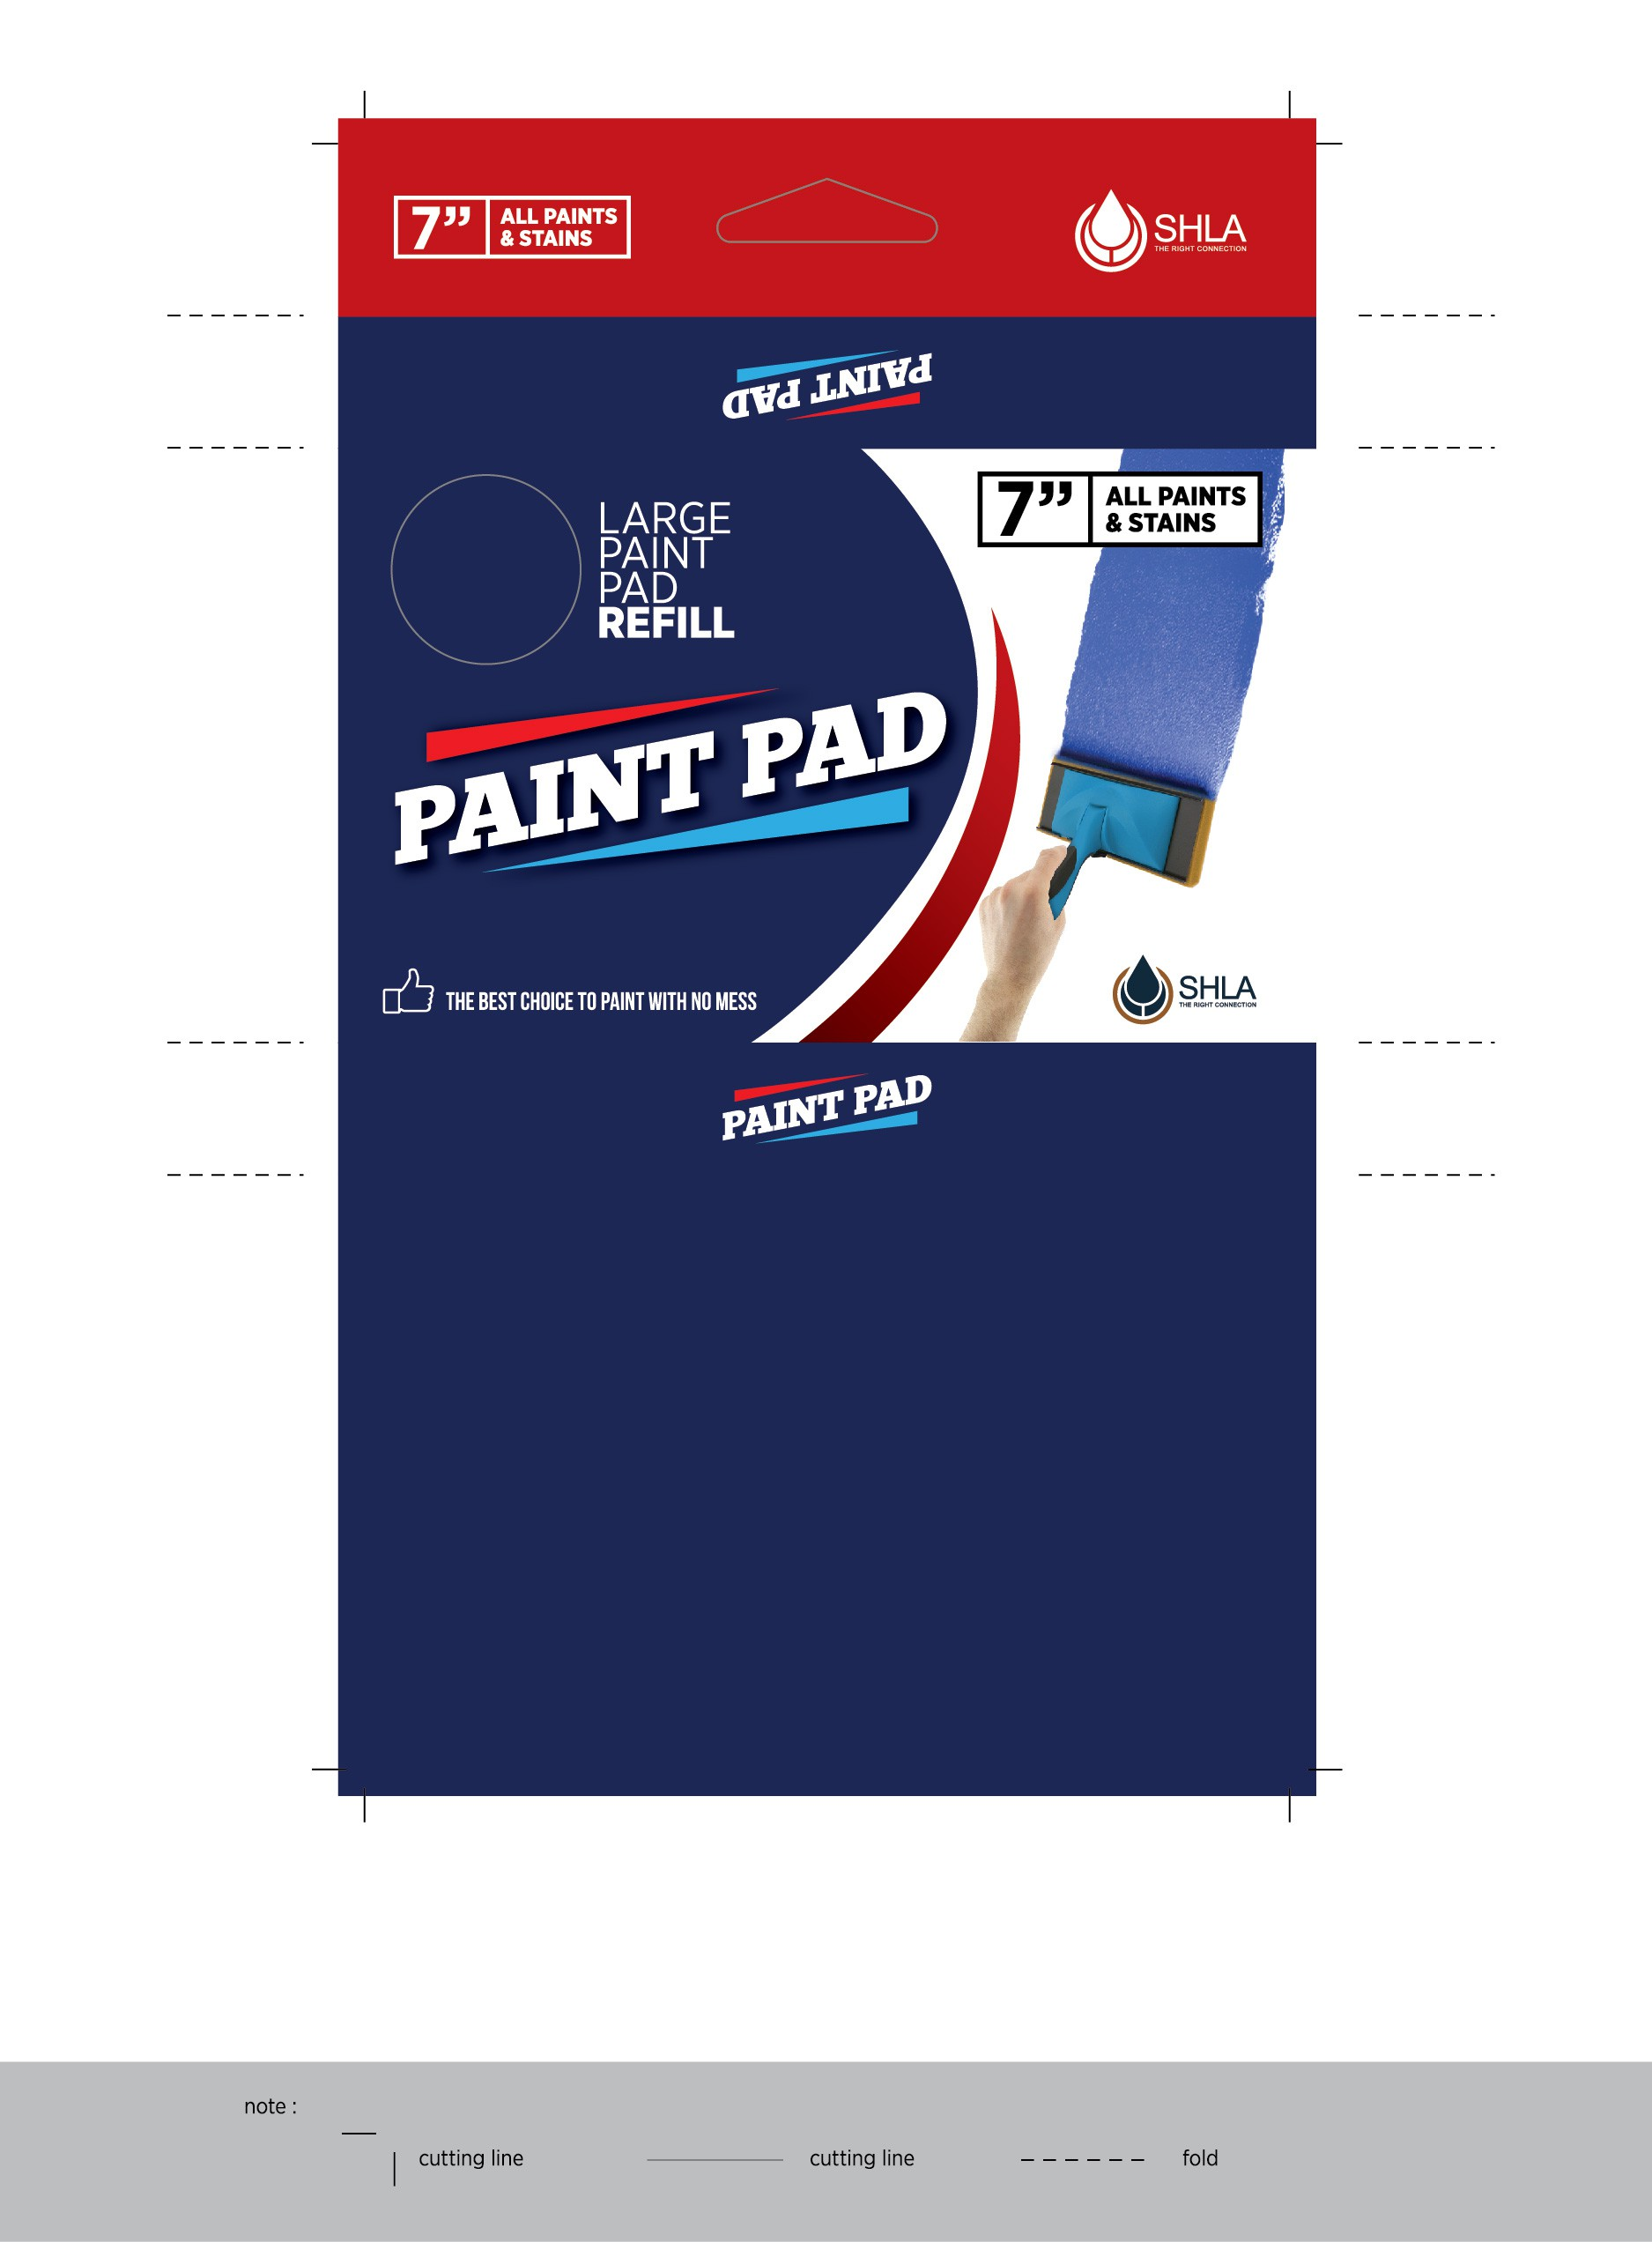 Create Packaging for a full line of Paint Pads that will be seen everywhere.